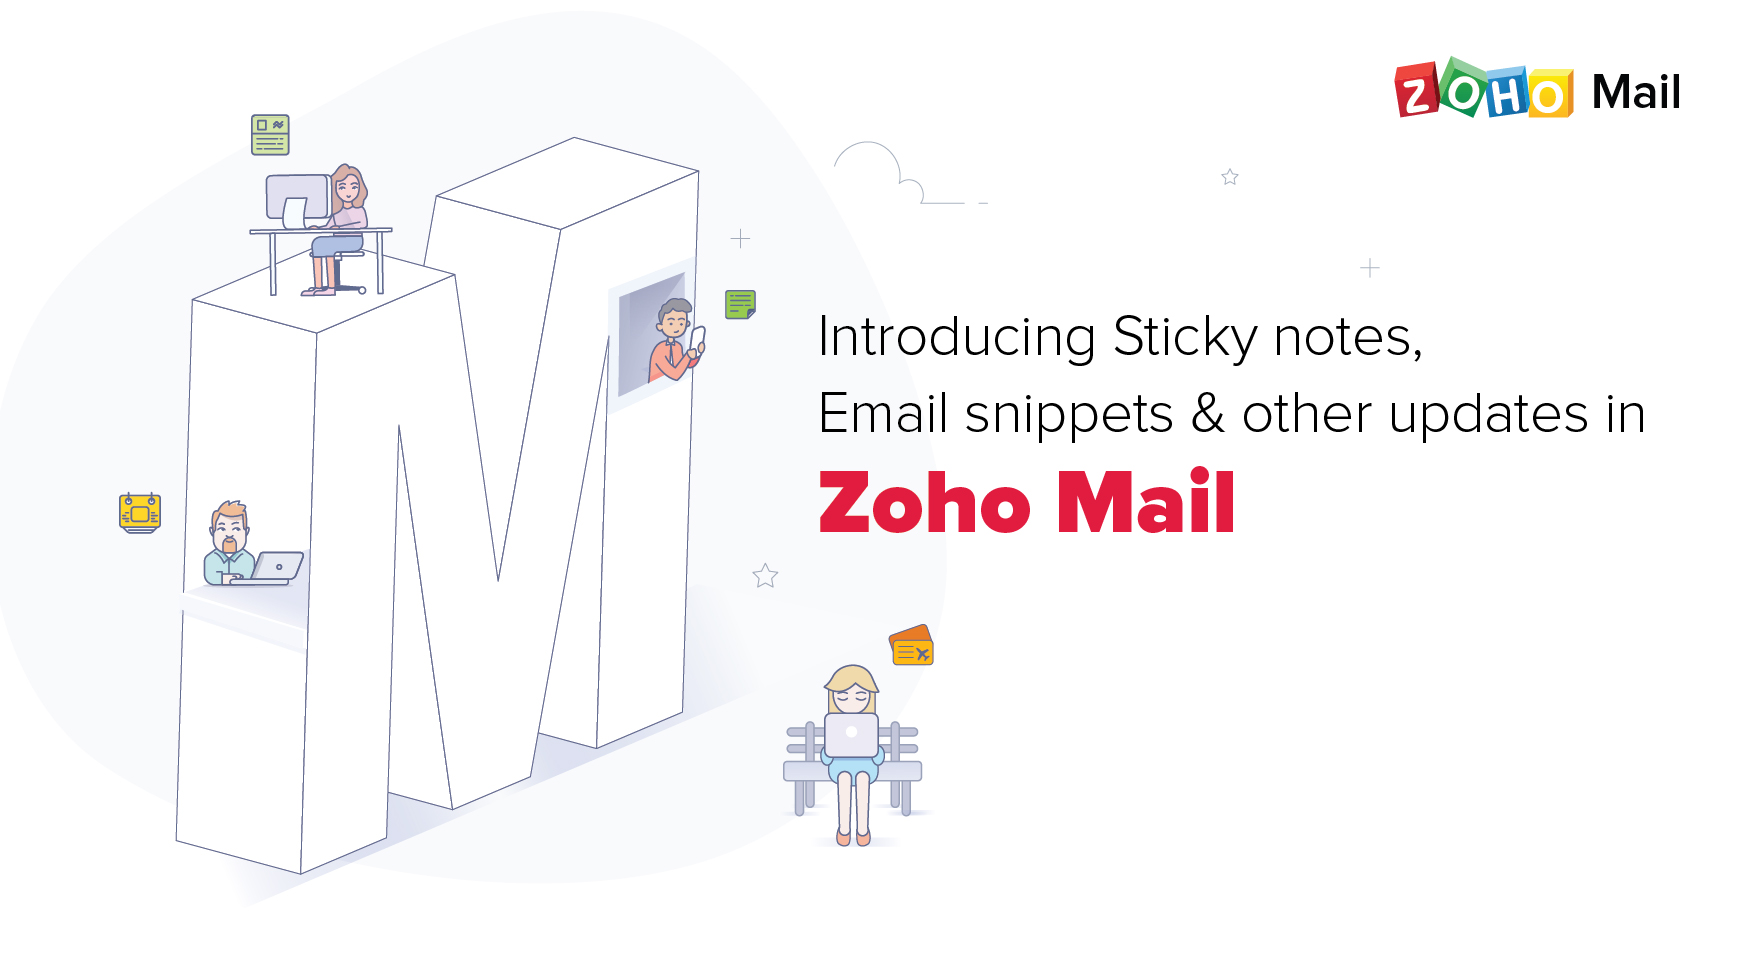 Introducing Sticky notes, Email snippets, and other updates in Zoho Mail